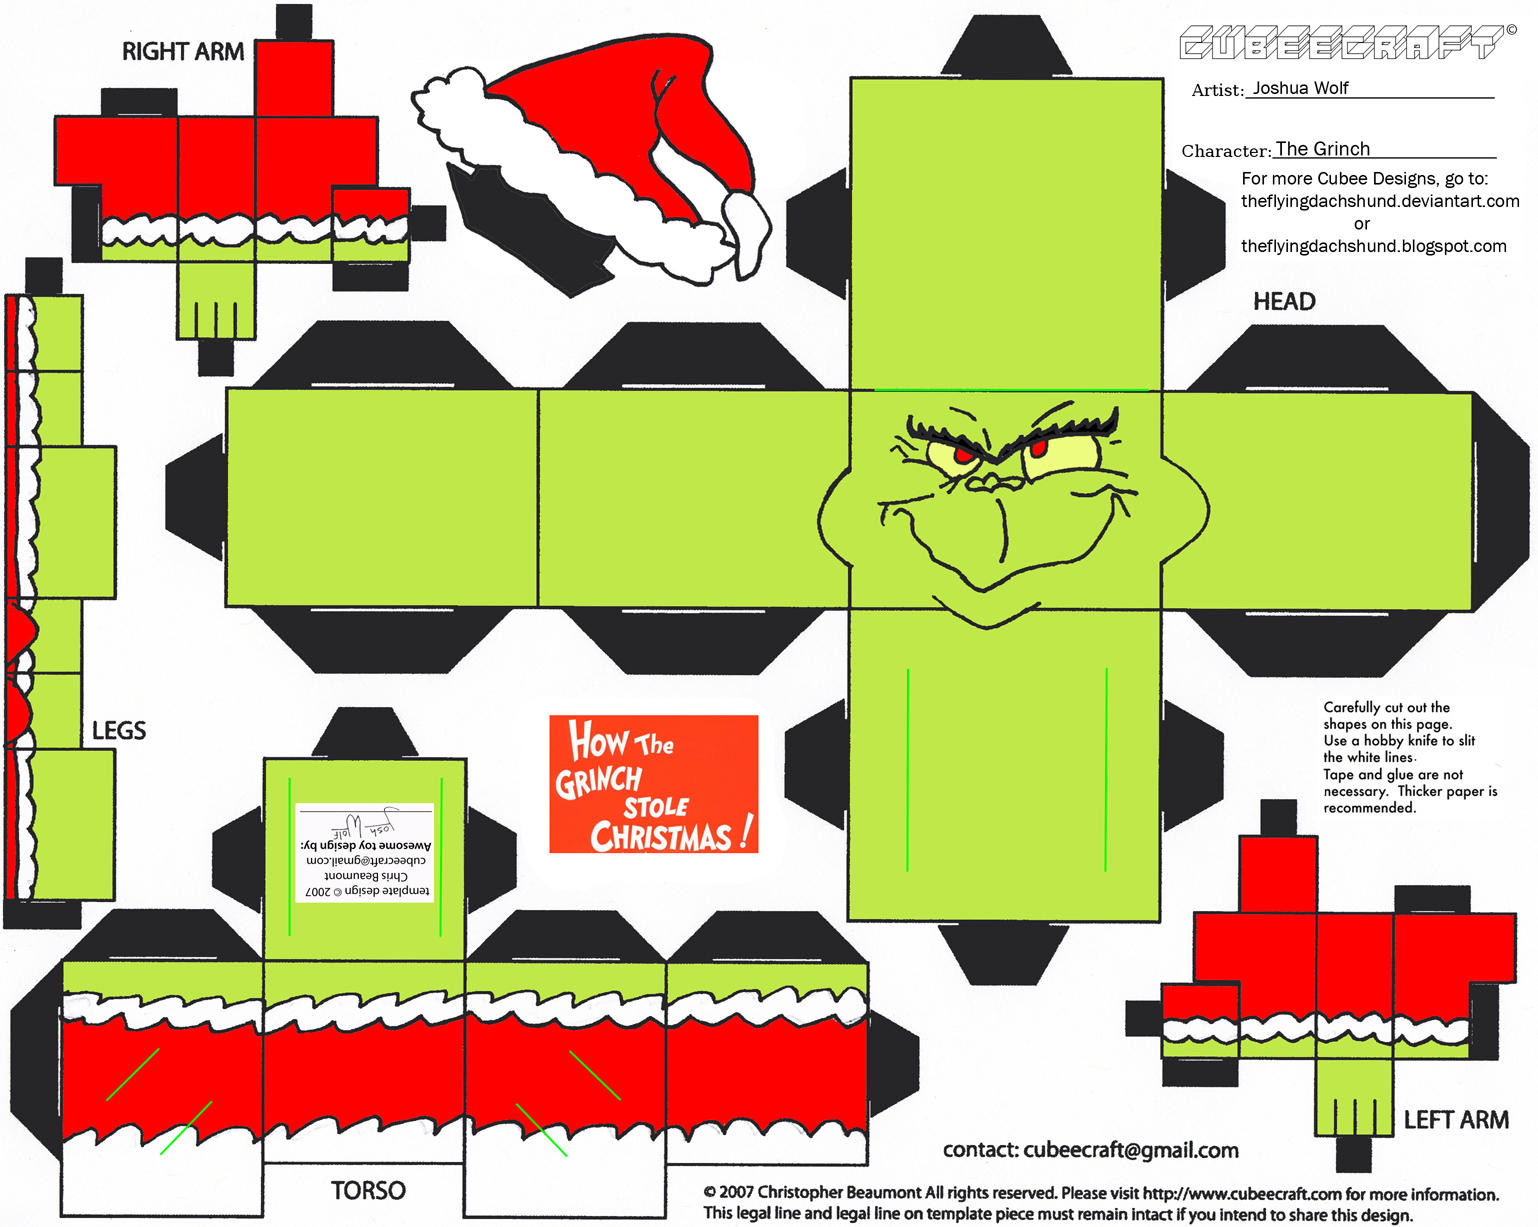 The Grinch Cartoon Wallpaper Viewing Gallery